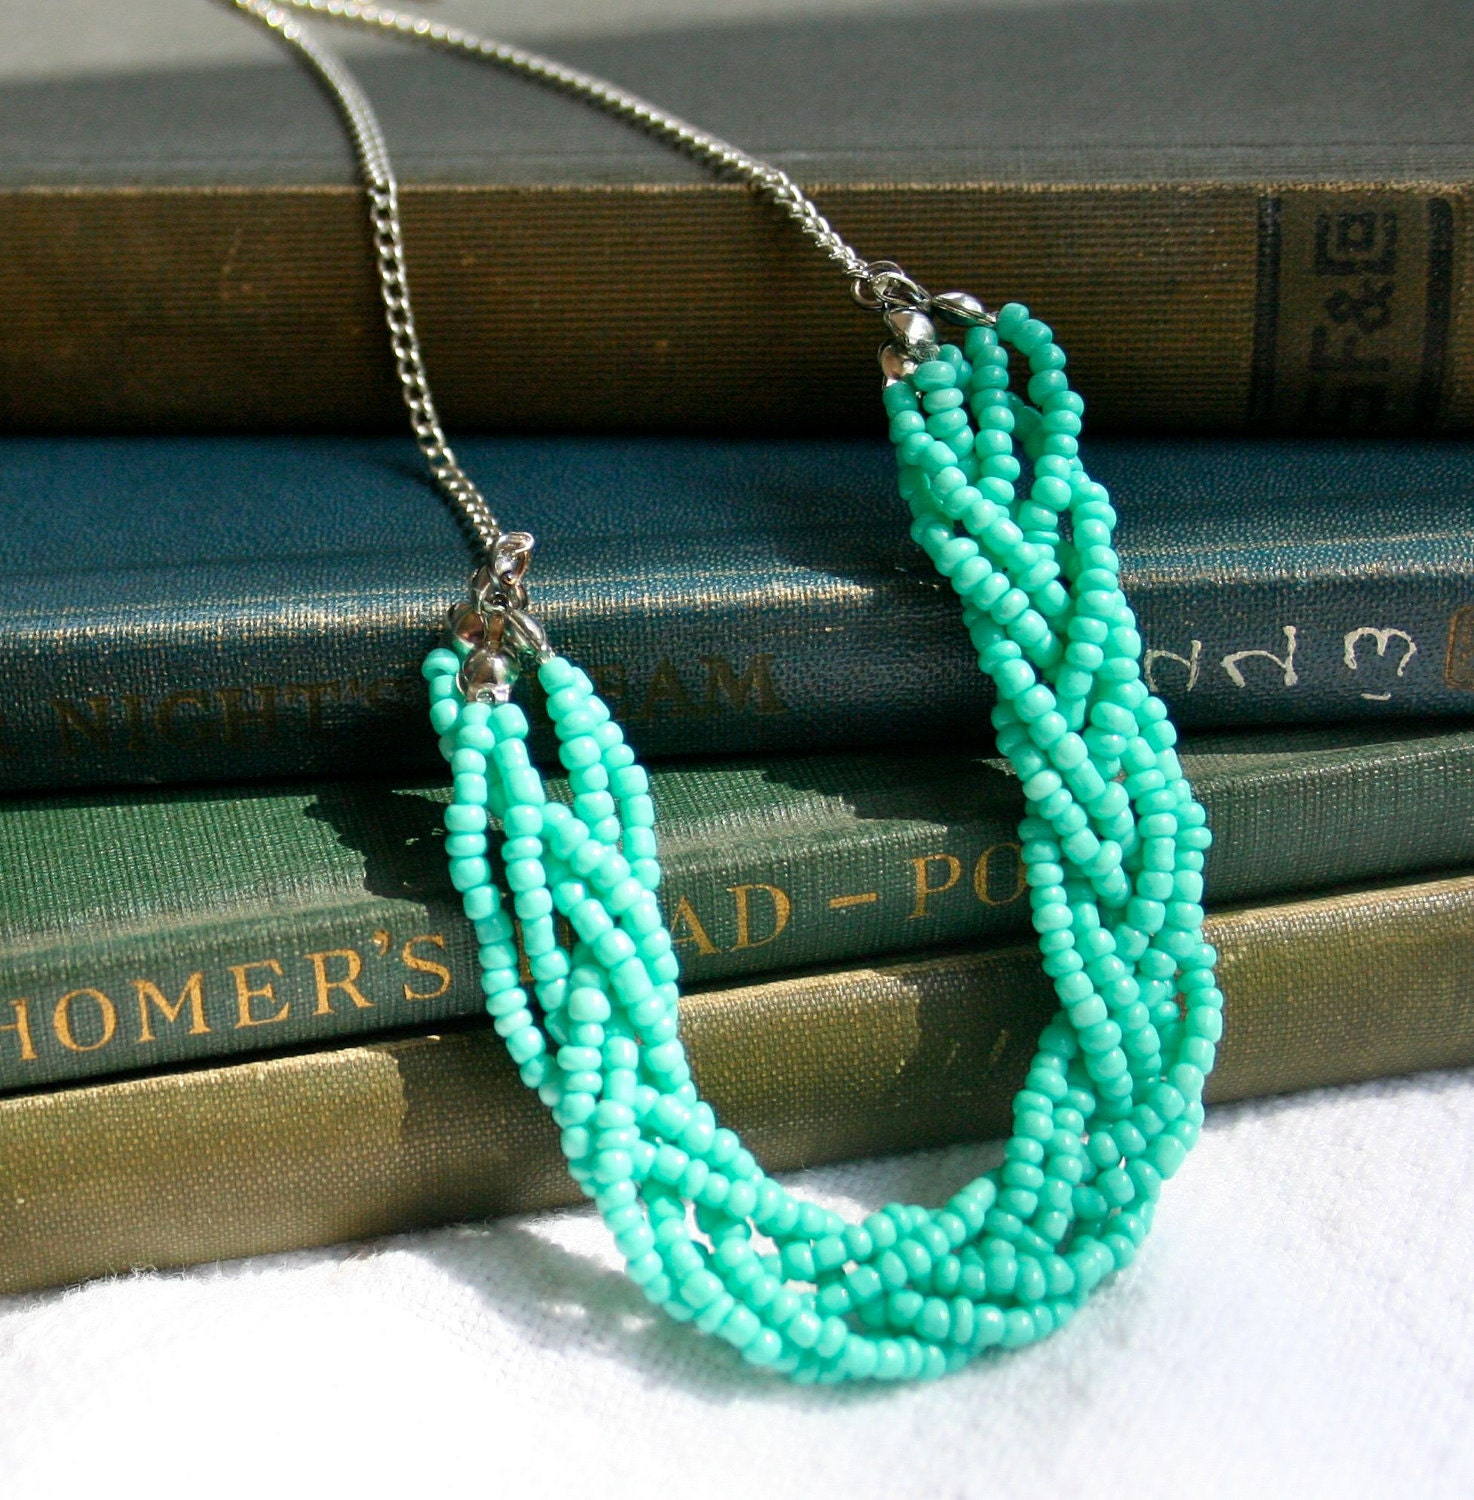 Beads Necklace Beads: Vintage Inspired Turquoise Bead Braided Necklace